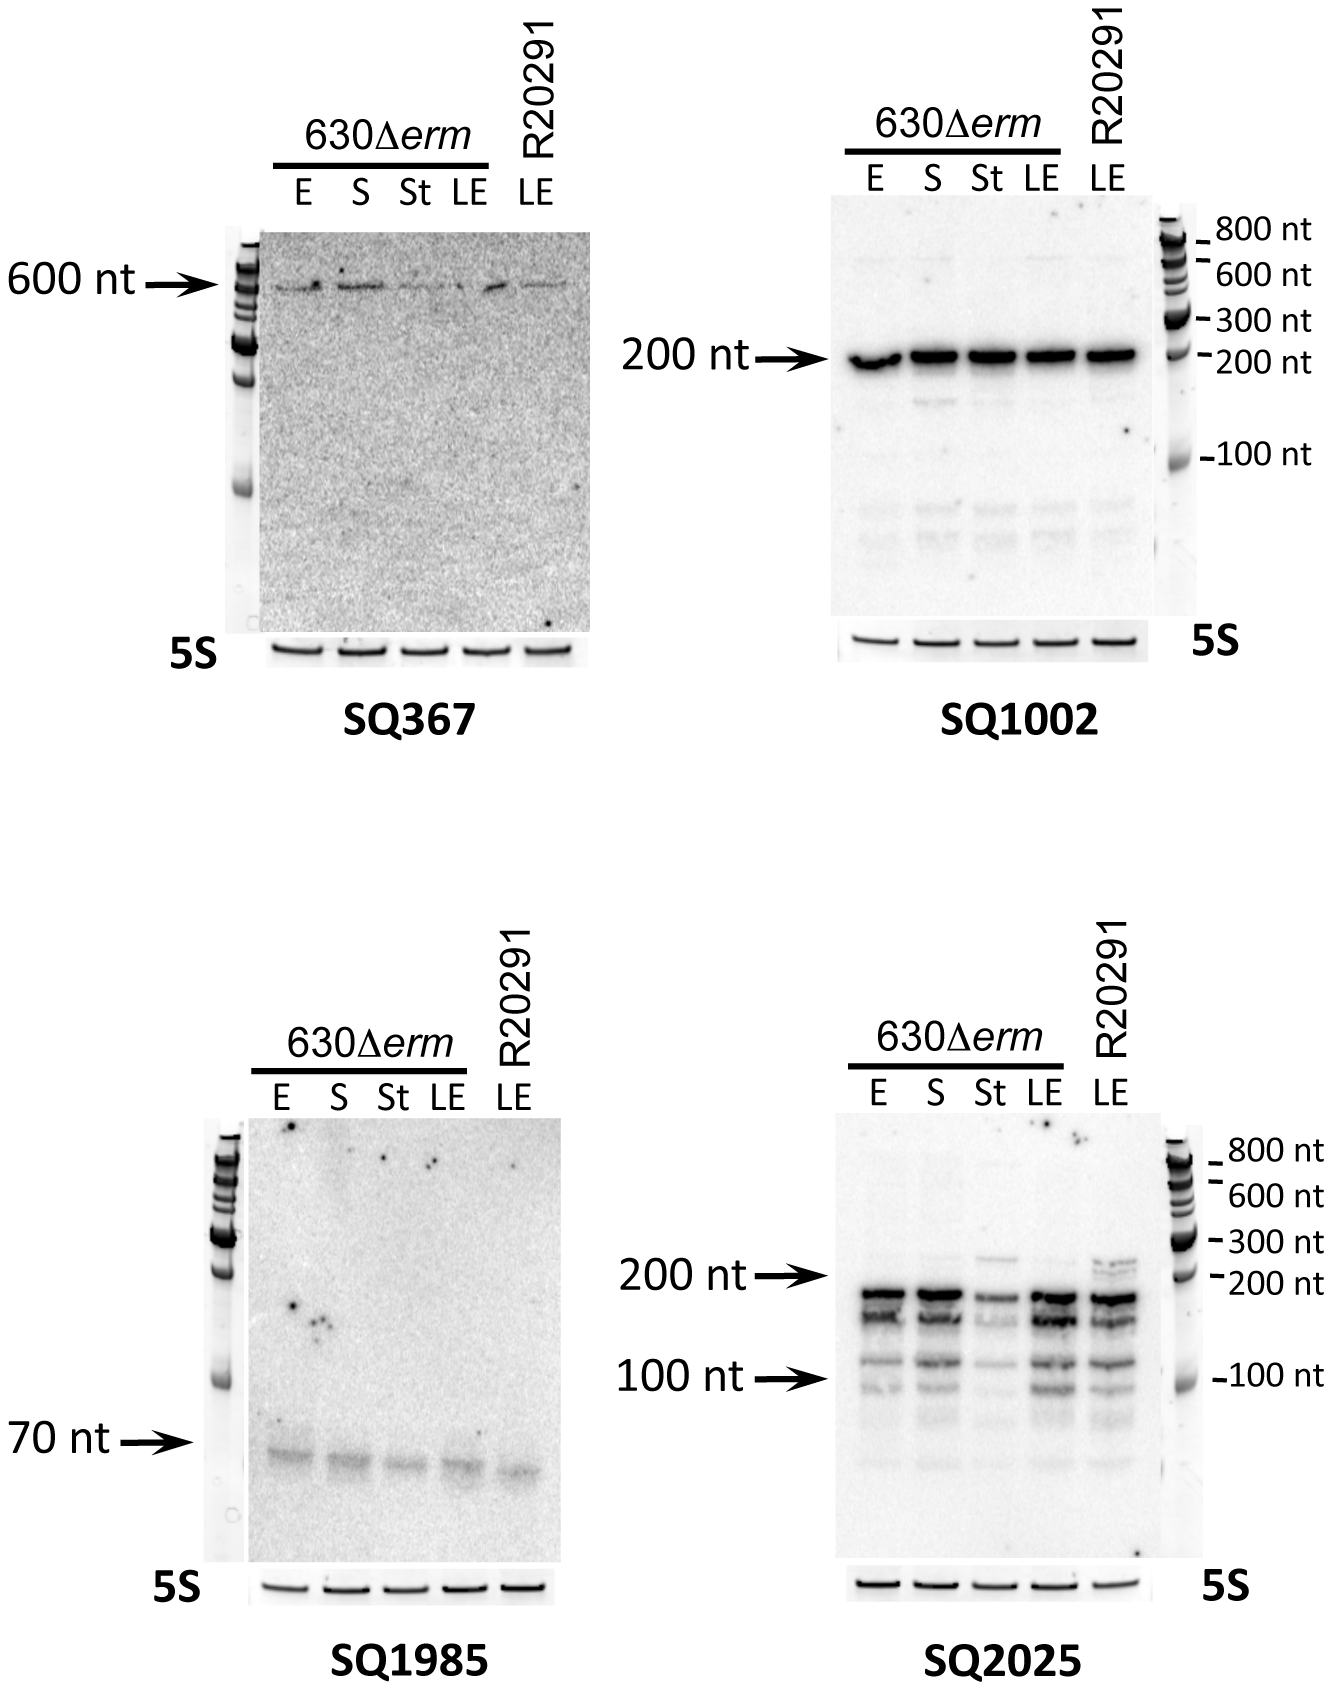 Experimental validation of <i>in silico</i> identified sRNAs.